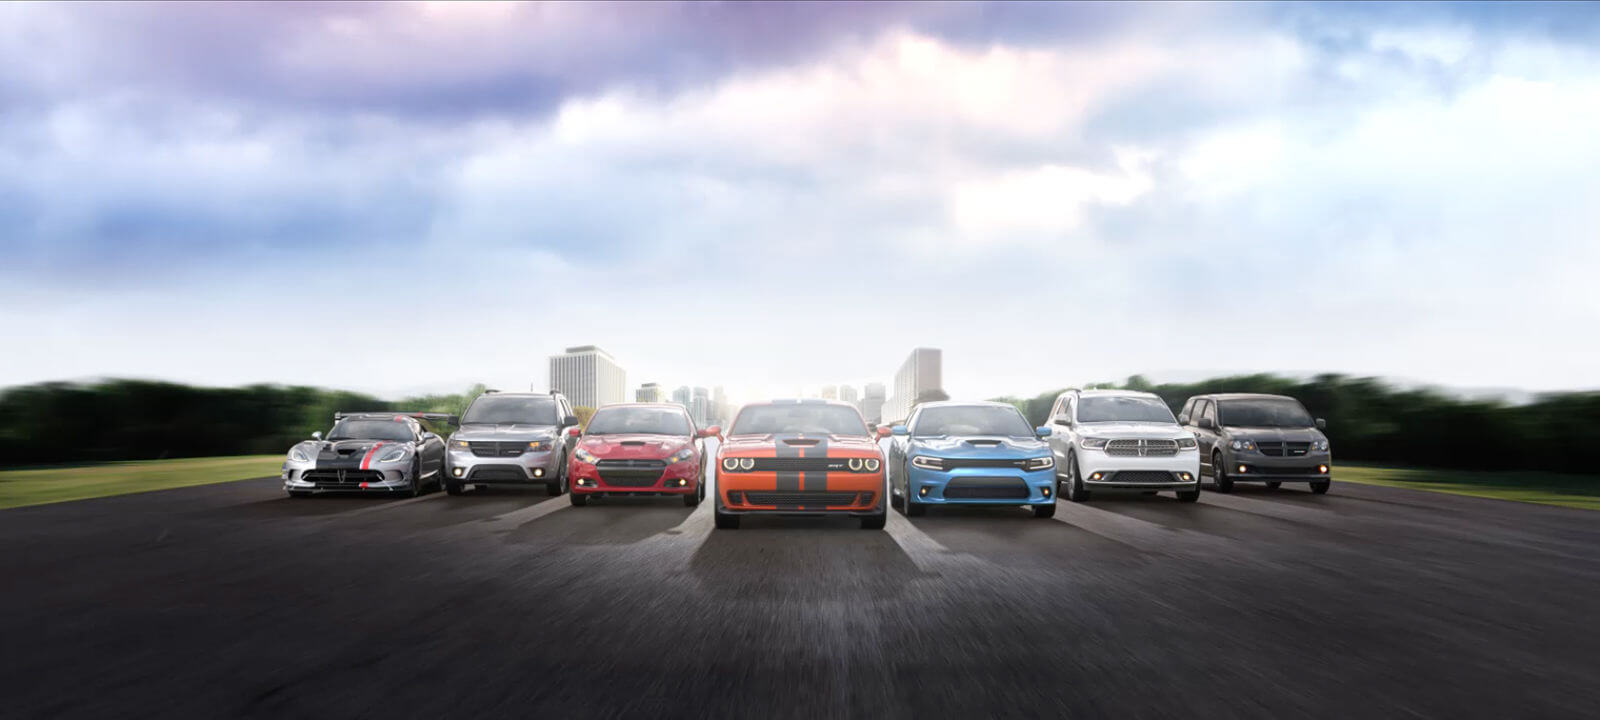 All-Cars-Lineup-Sky